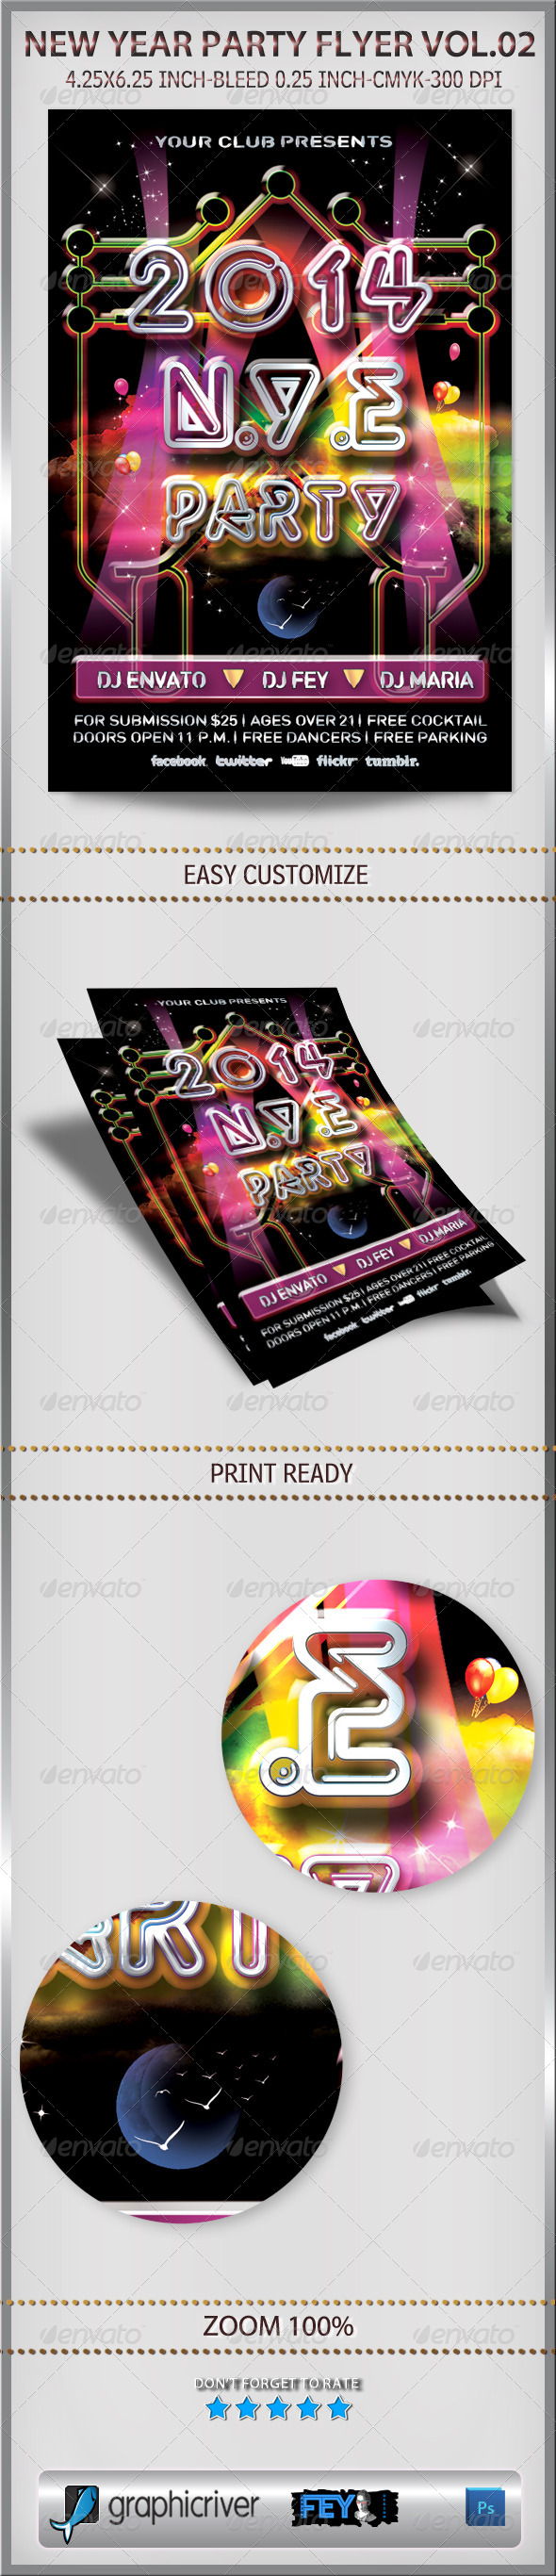 New Year Party Flyer Vol.02 - Flyers Print Templates